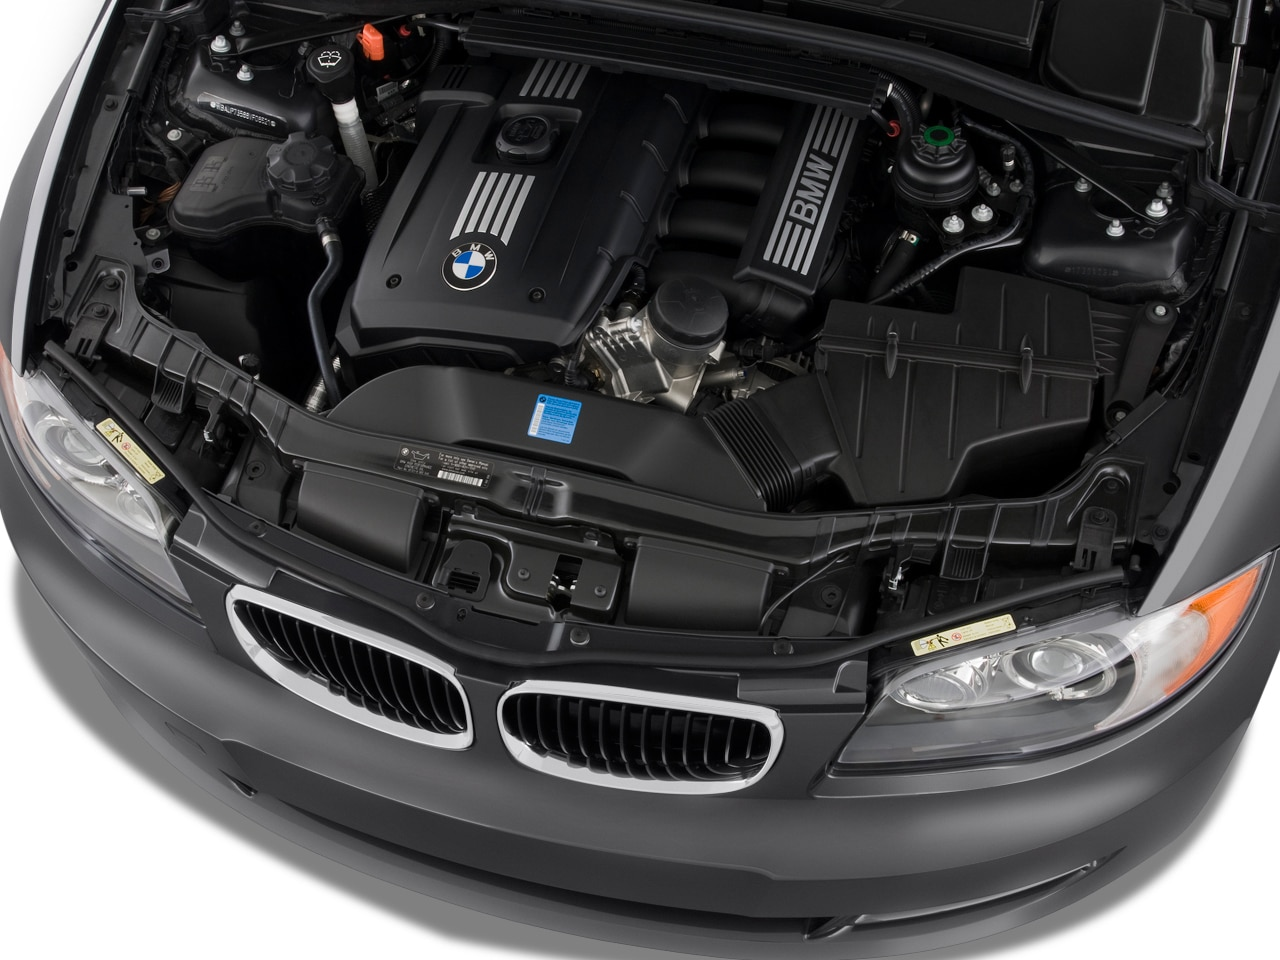 hight resolution of wrg 3813 bmw 128i engine diagram bmw 1 series engine diagram bmw 128i engine diagram